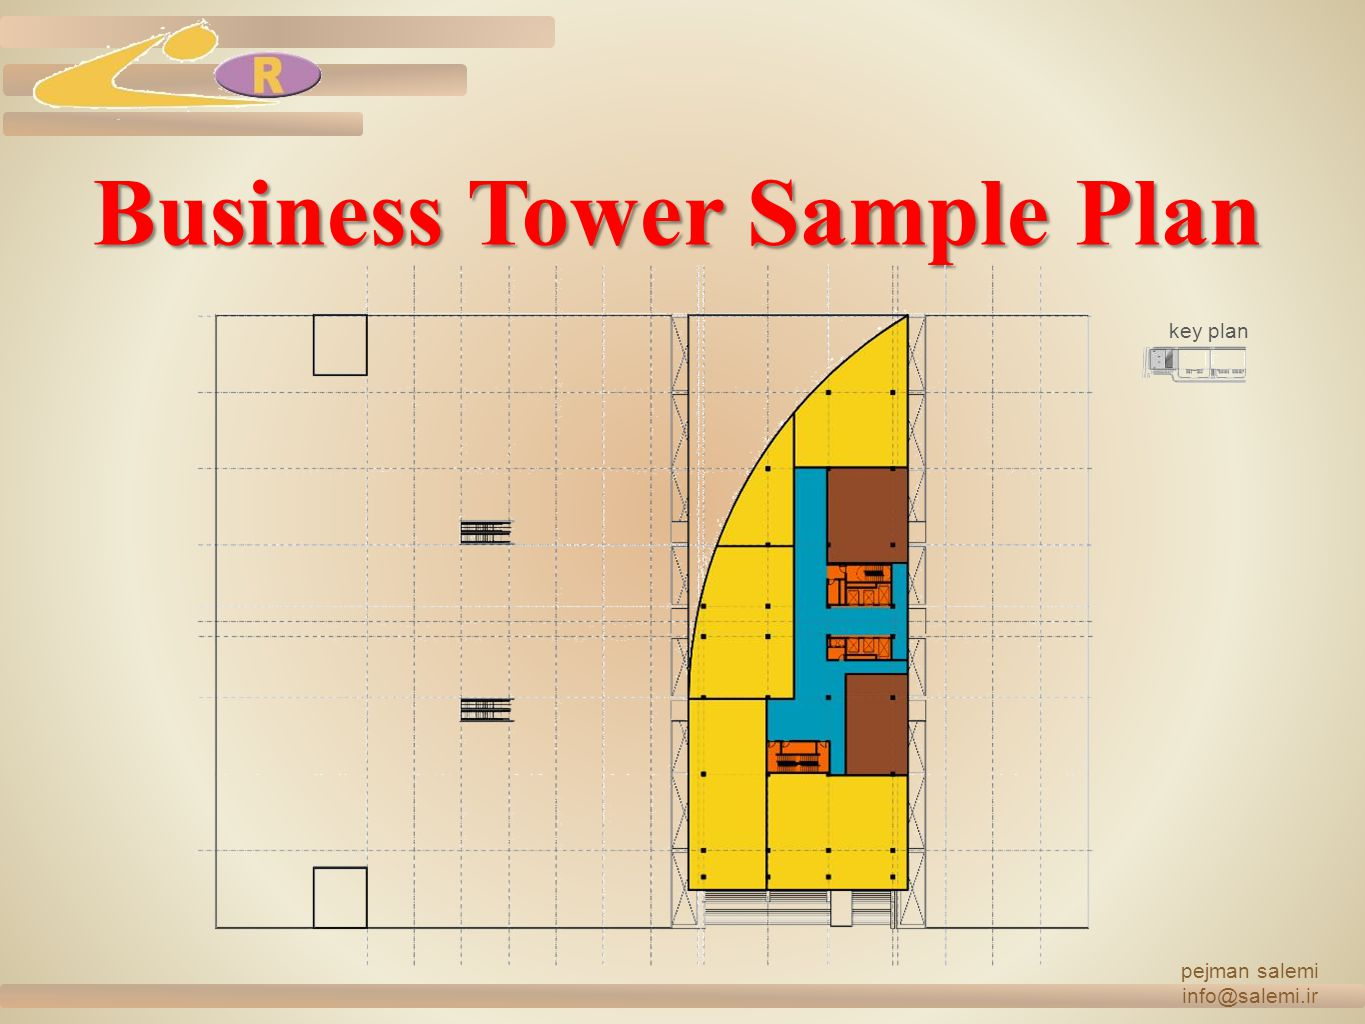 Business Tower Sample Plan